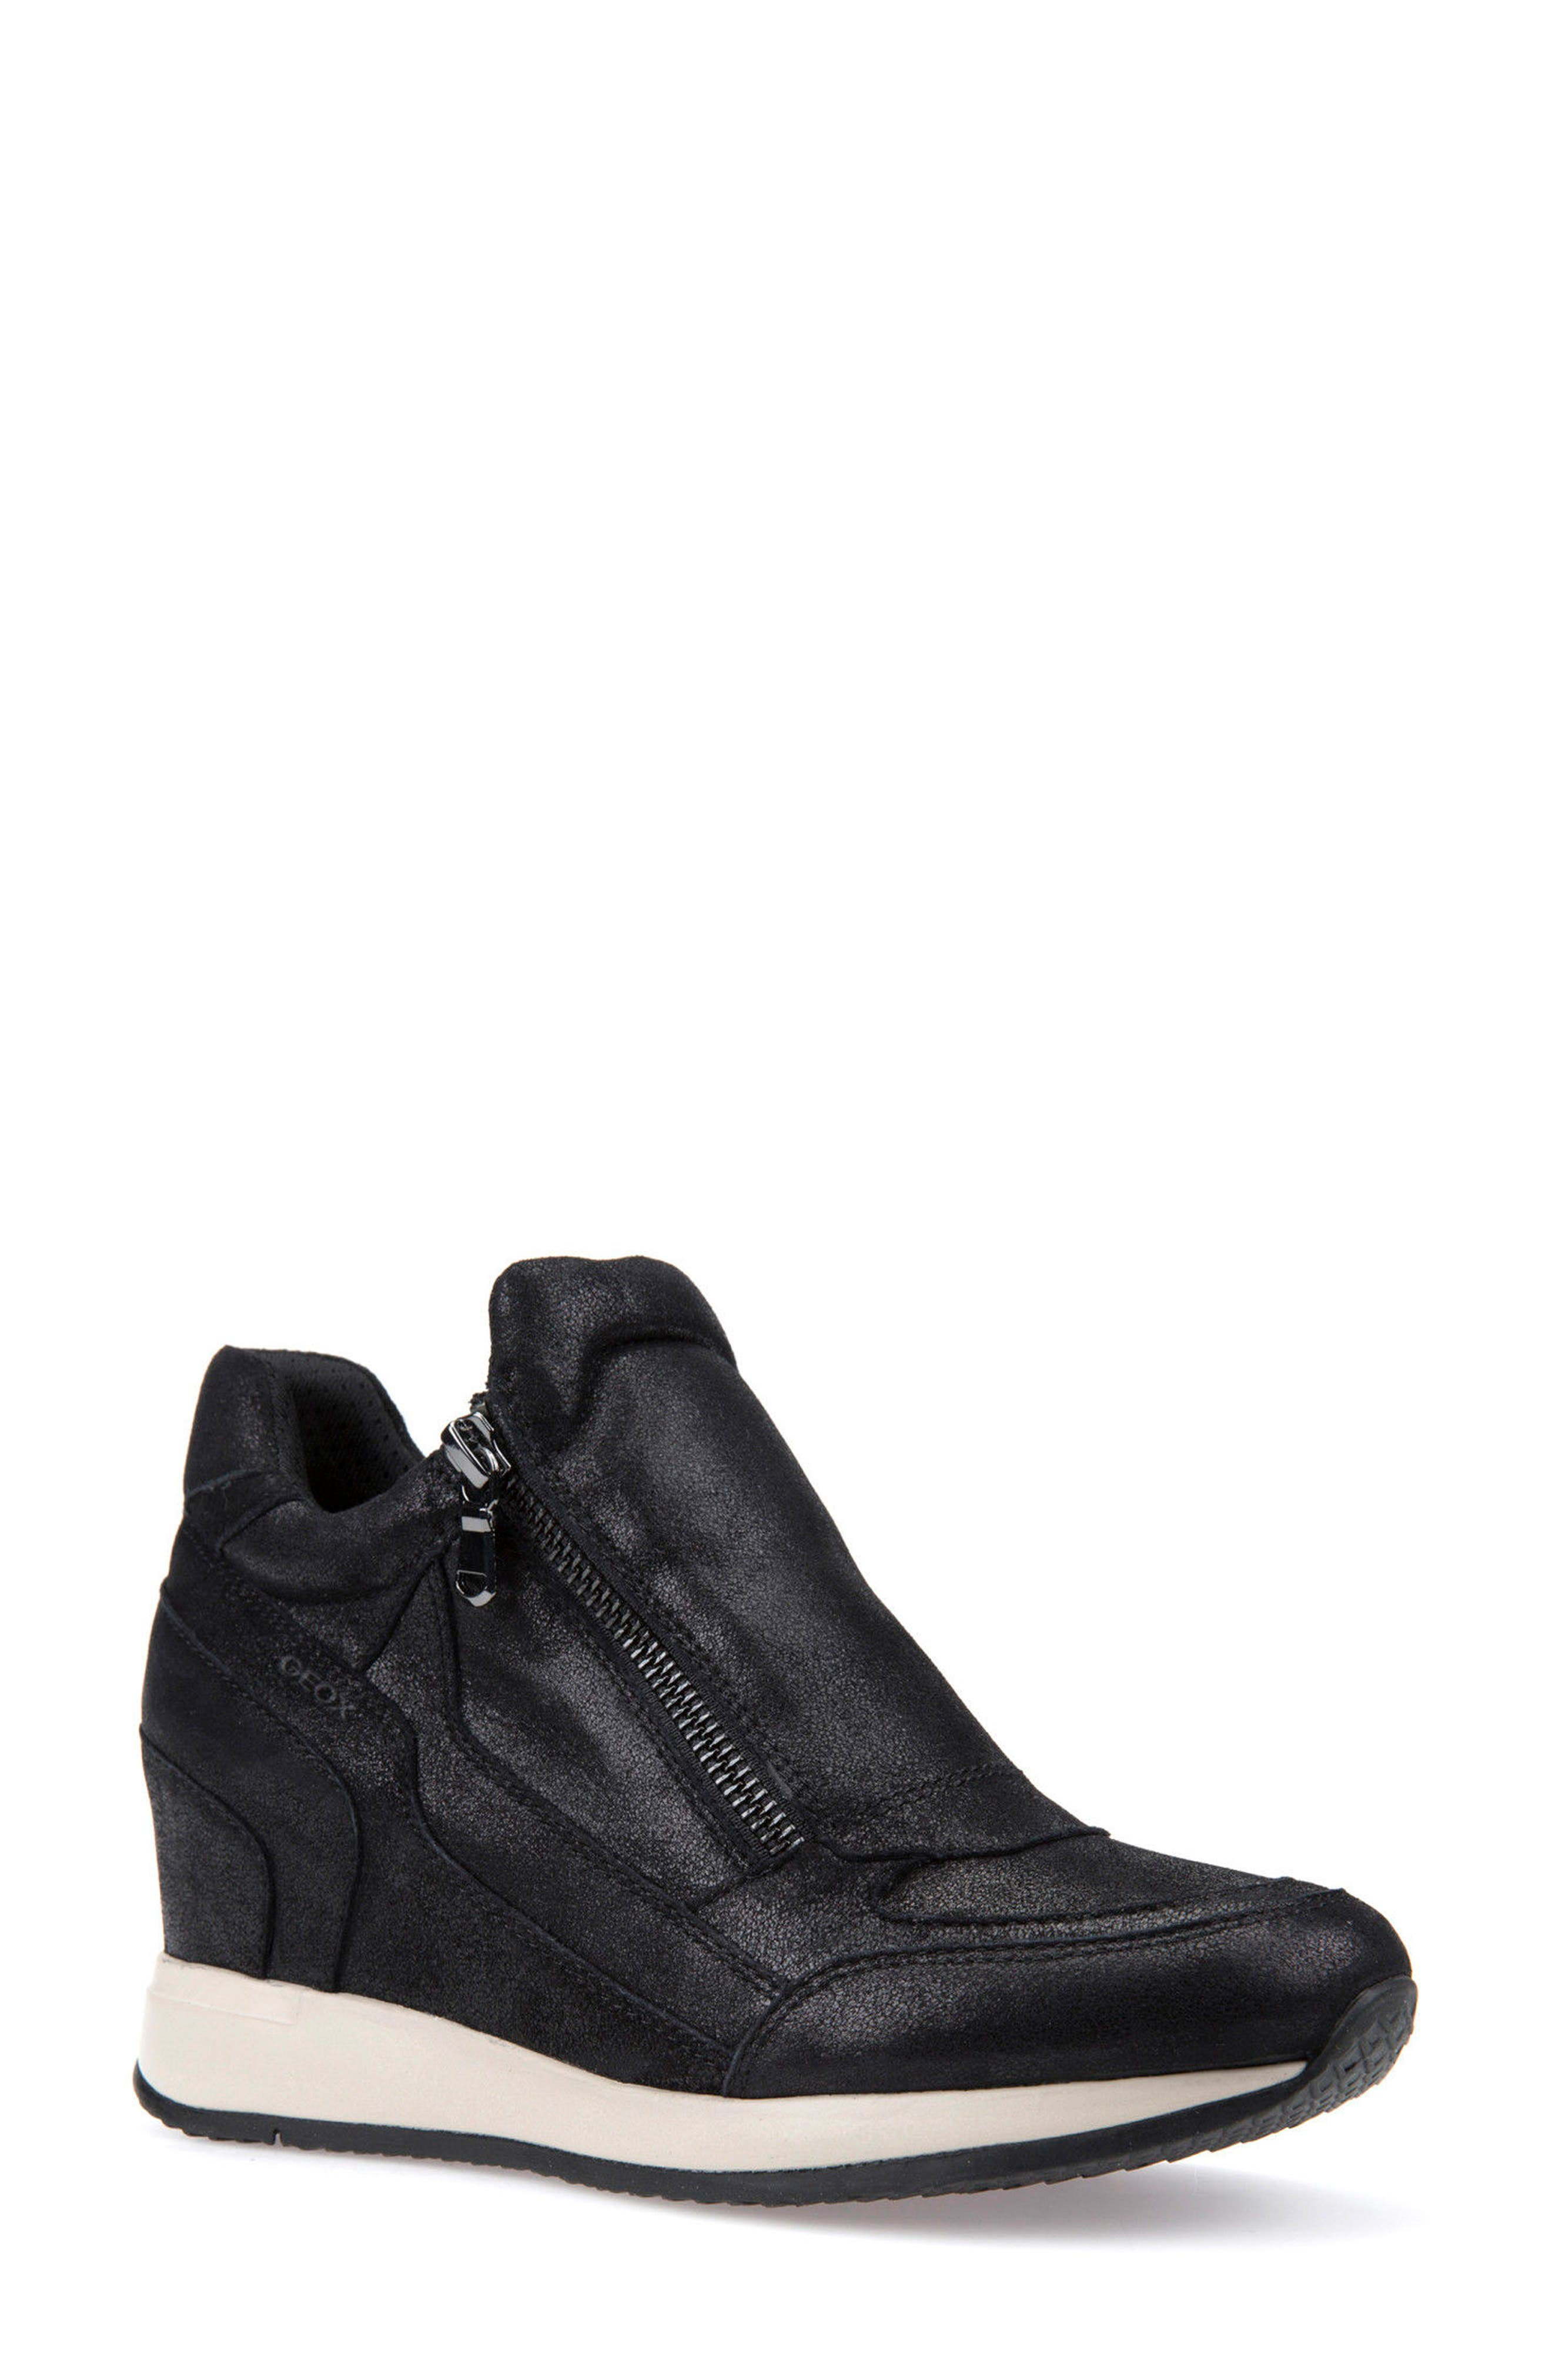 Nydame Wedge Sneaker,                         Main,                         color, 001